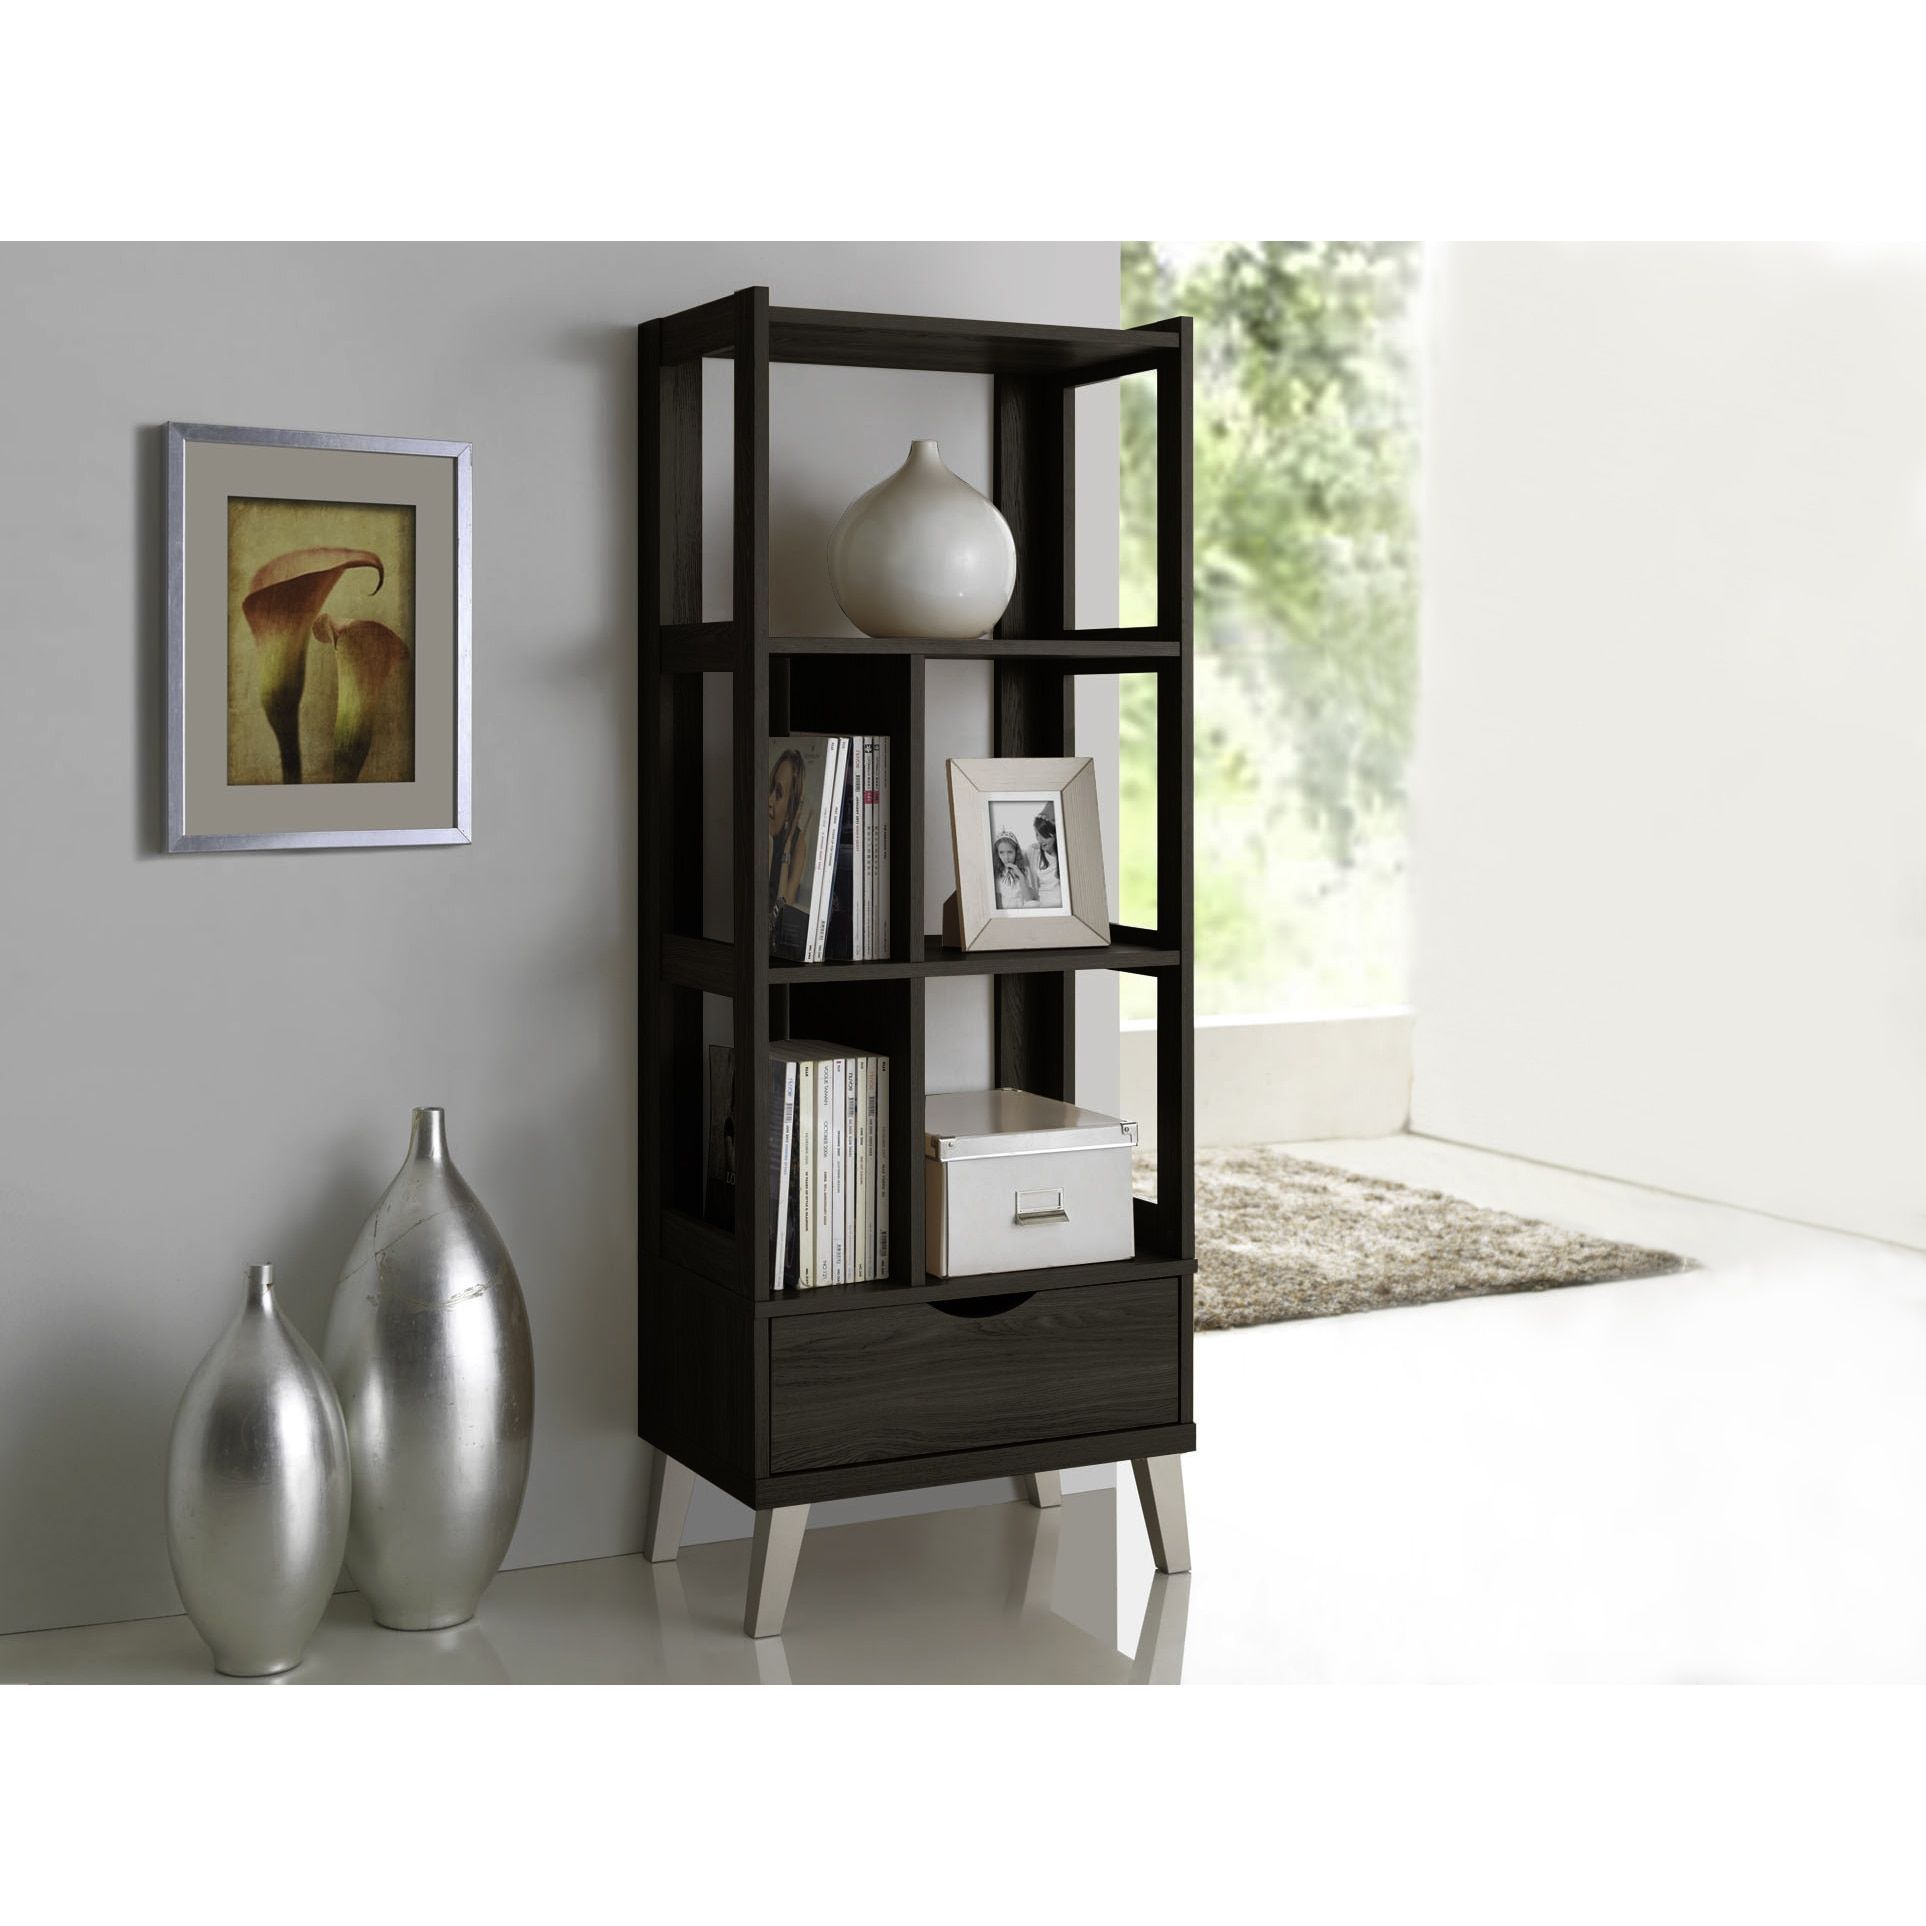 view bookcase accent gallery horizontal furniture dark wood bookcases photos intended displaying of storages for white attachment preferred